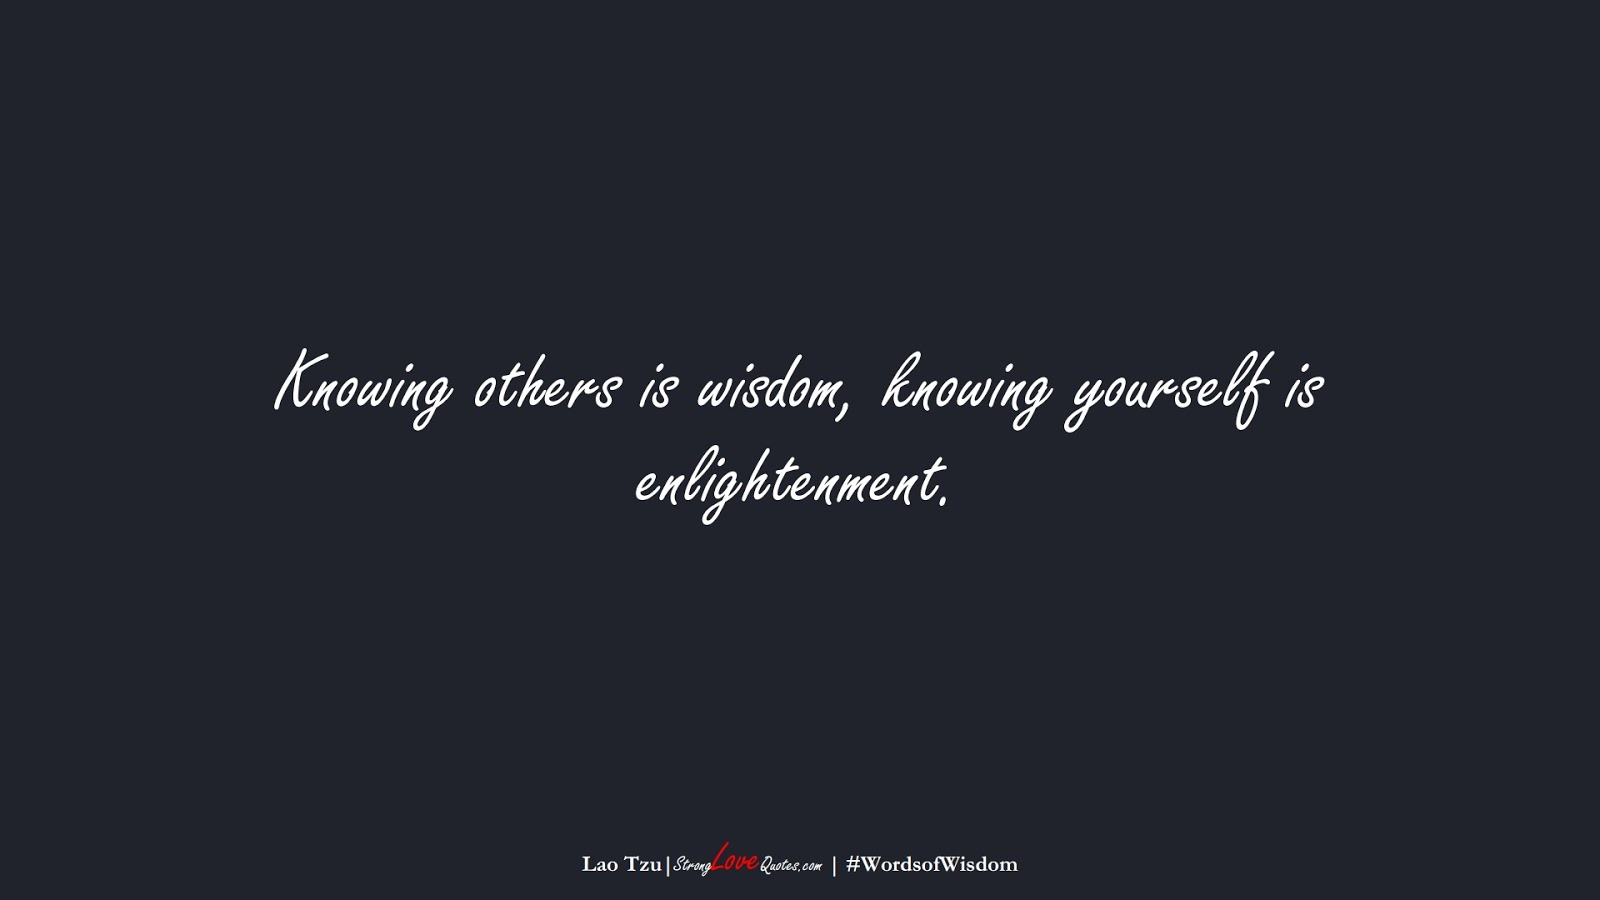 Knowing others is wisdom, knowing yourself is enlightenment. (Lao Tzu);  #WordsofWisdom